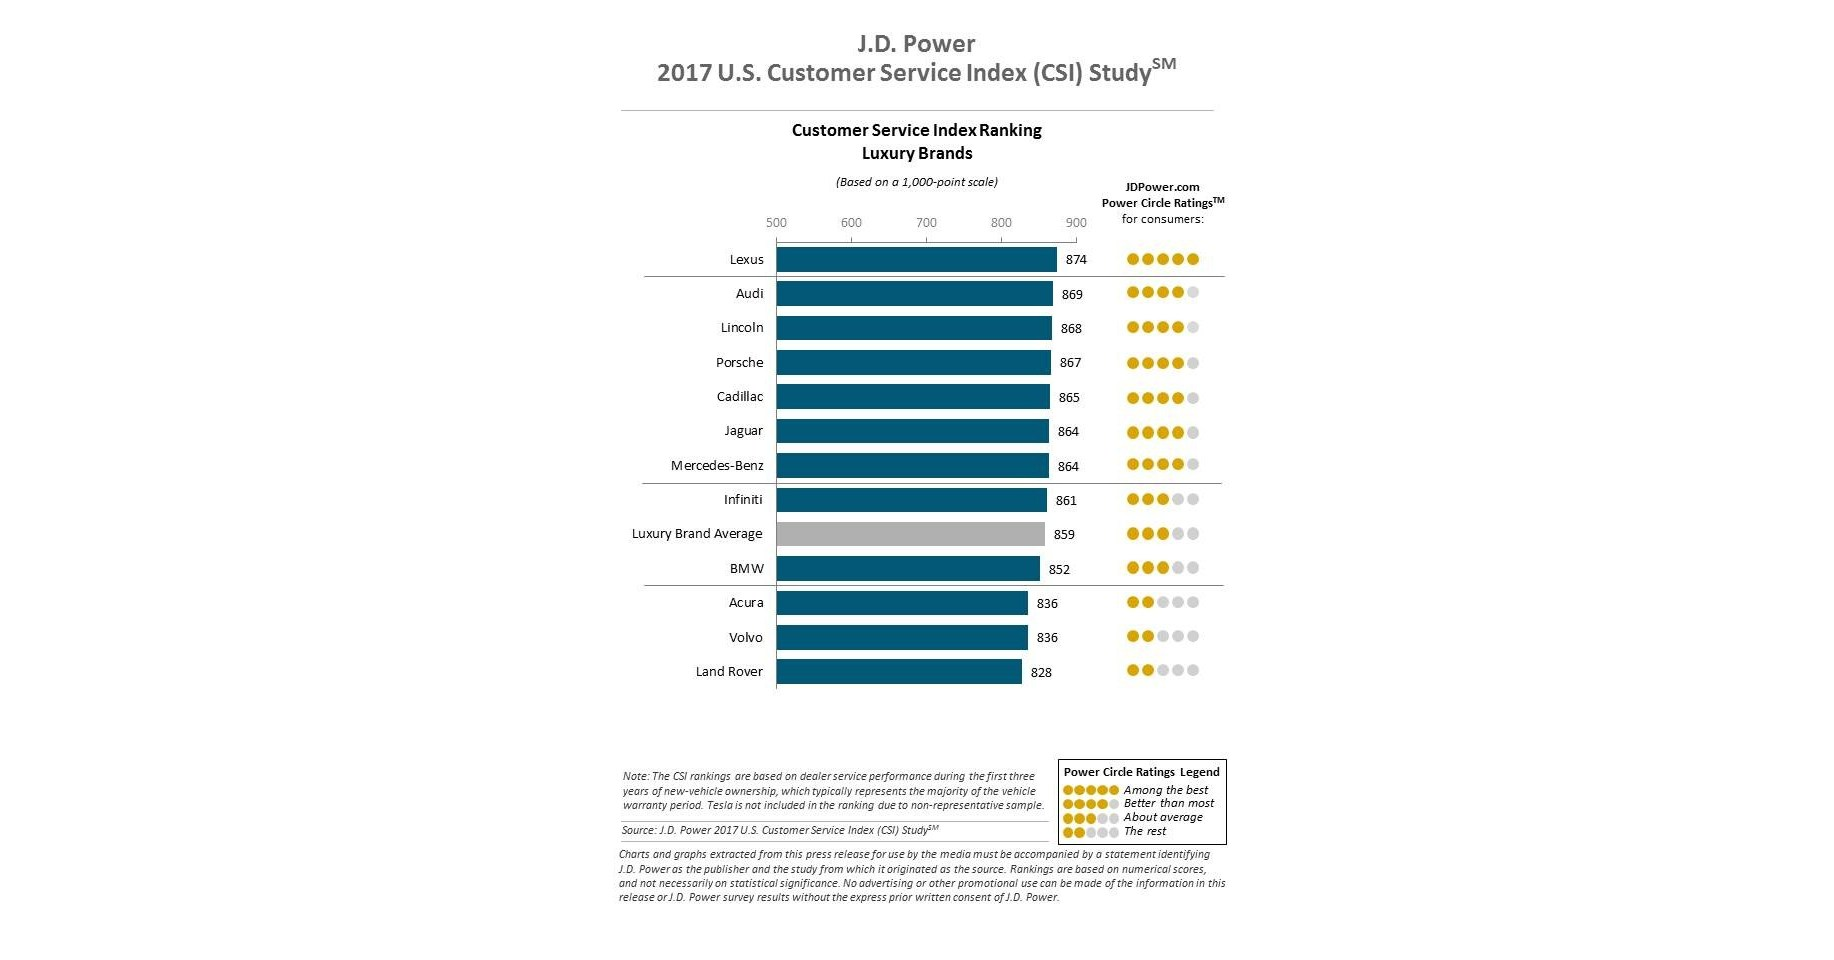 Automotive service quality rises along with overall customer satisfaction j d power finds